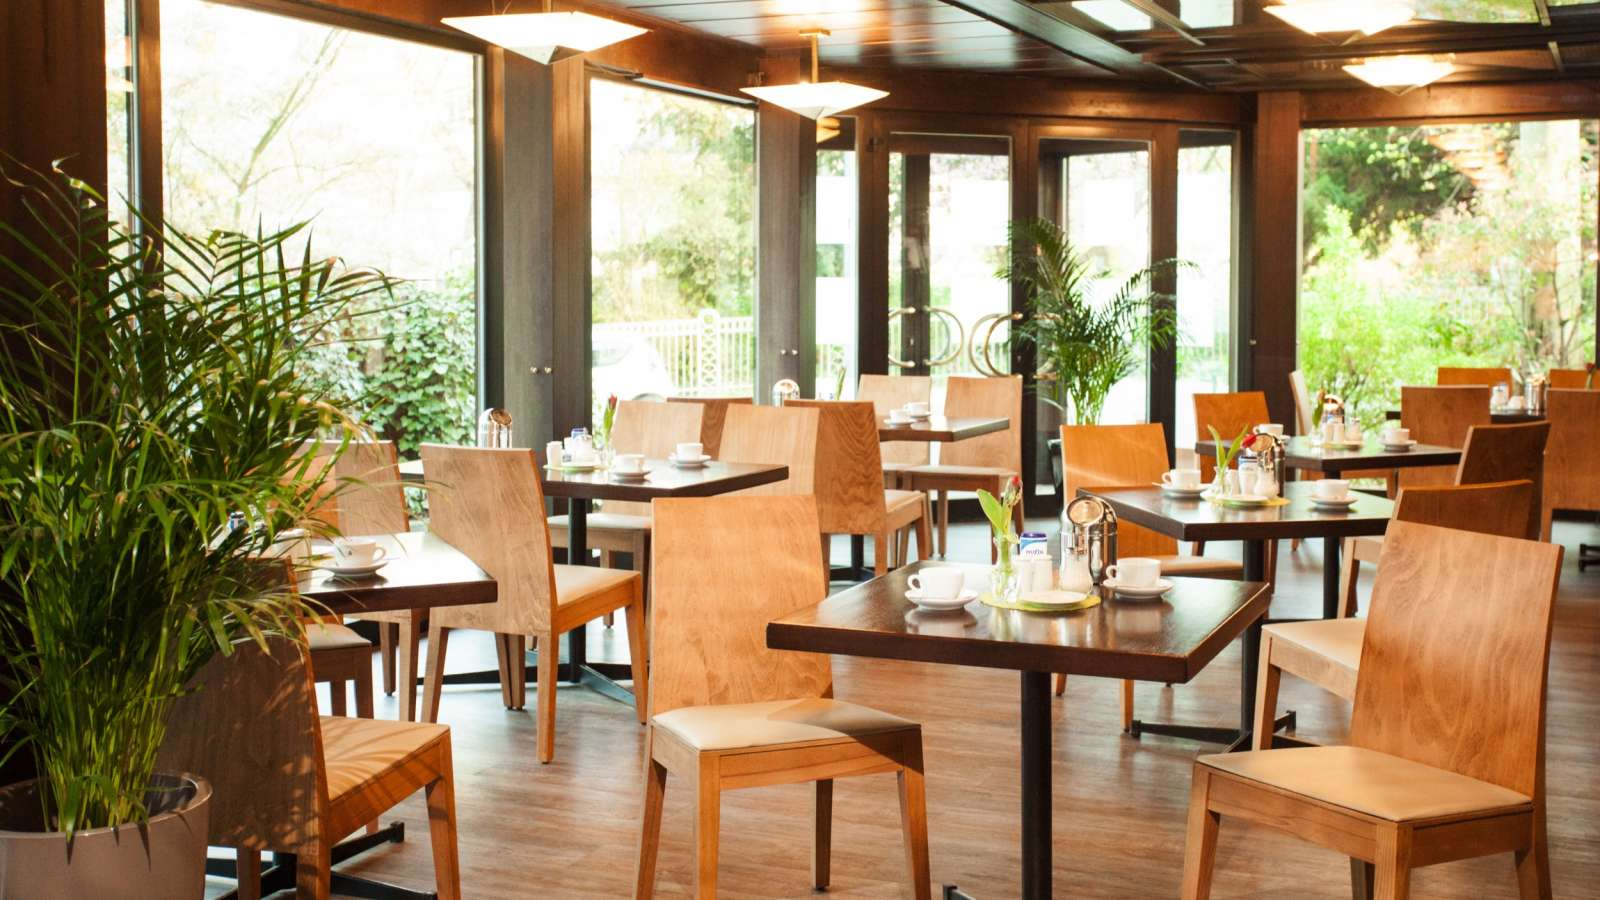 The breakfast room of Centro Hotel Klee am Park in Wiesbaden